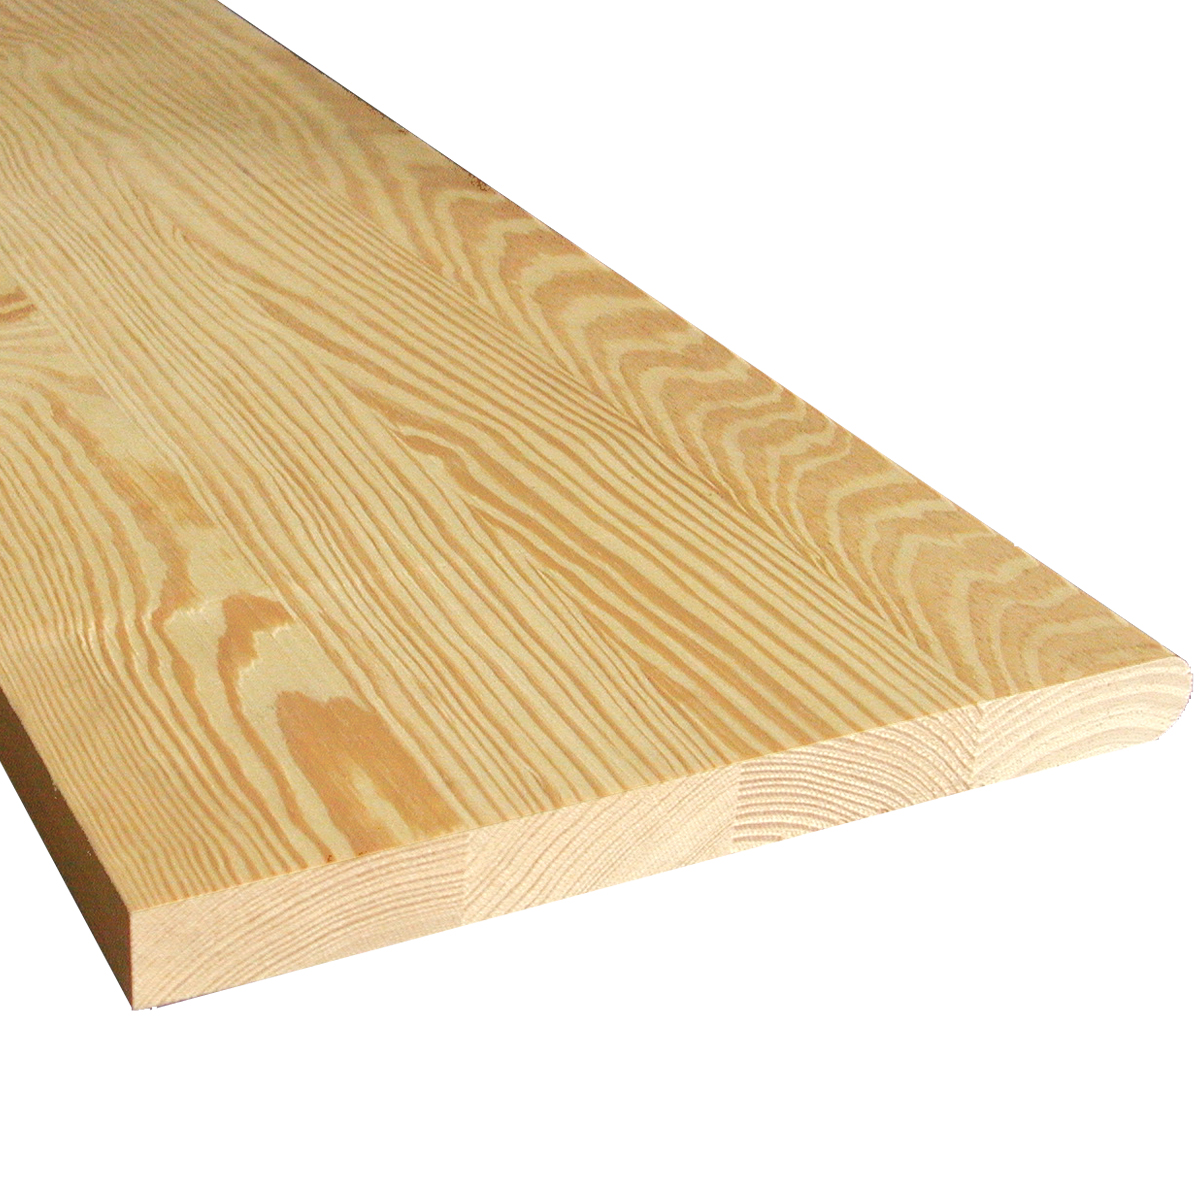 YELLOW PINE STAIR TREAD, LAMINATED